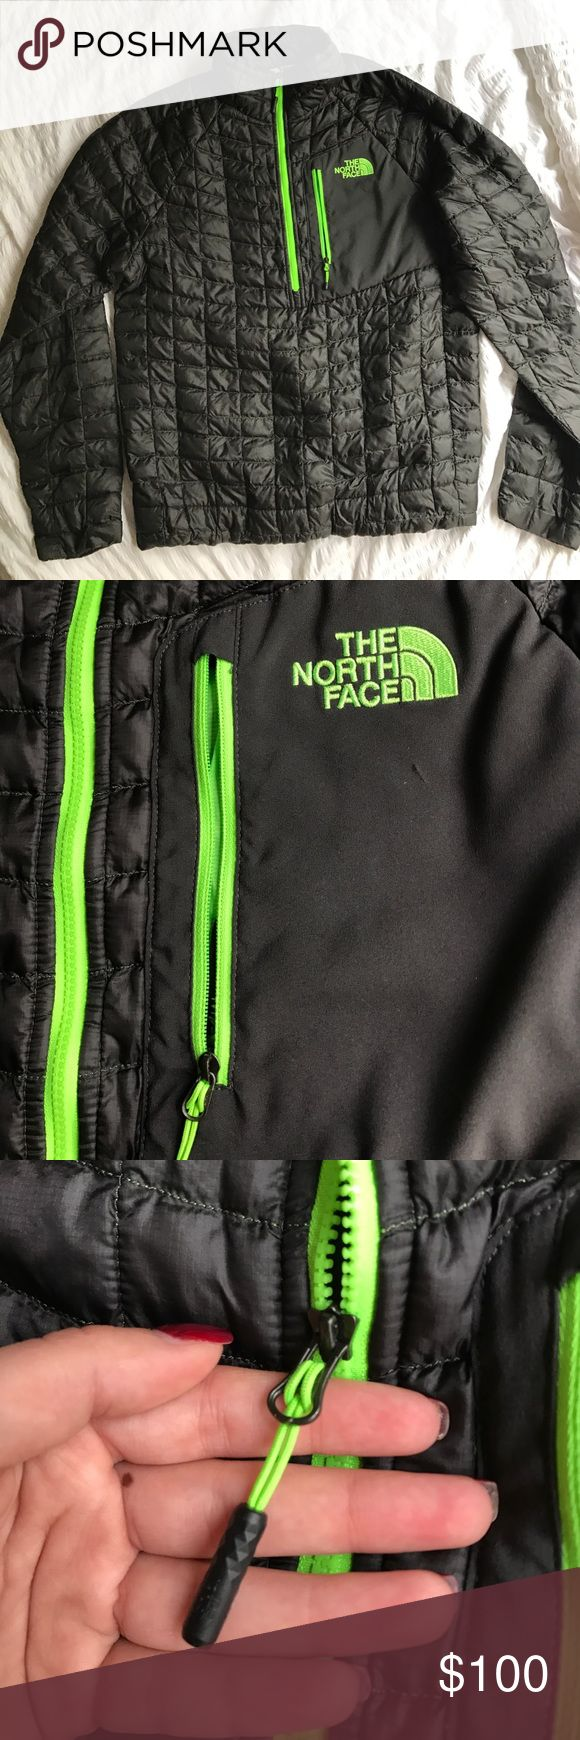 """Men's north face """"thermoball"""" jacket. Perfect condition. Very lightweight yet very warm. Could possibly fit a medium as well. The North Face Jackets & Coats"""